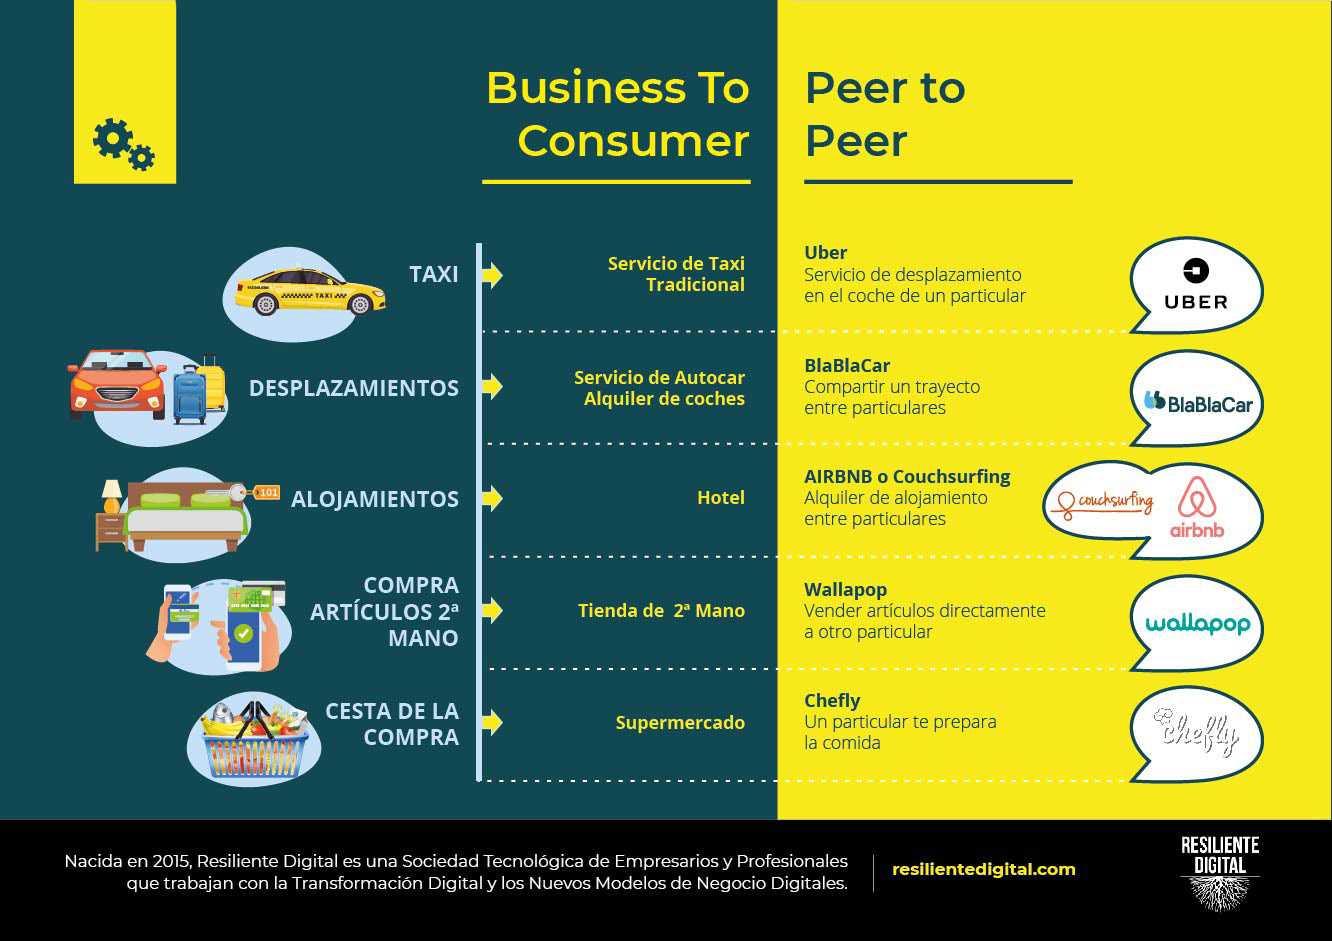 Business To Consumer vs Peer to Peer